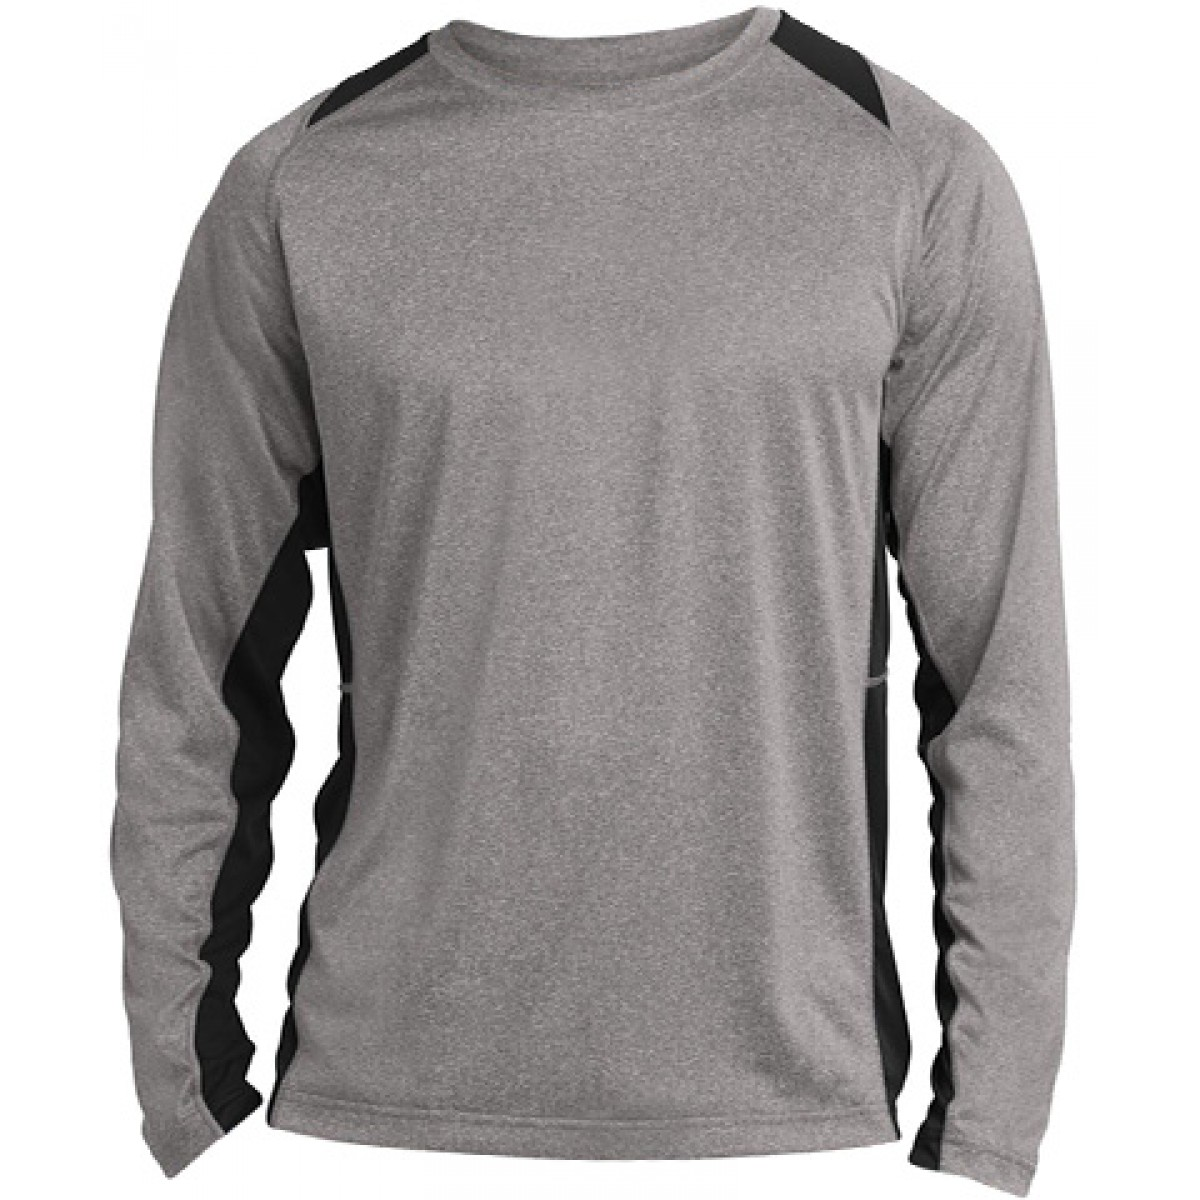 Long Sleeve Heather Colorblock Contender-Gray/Black-S